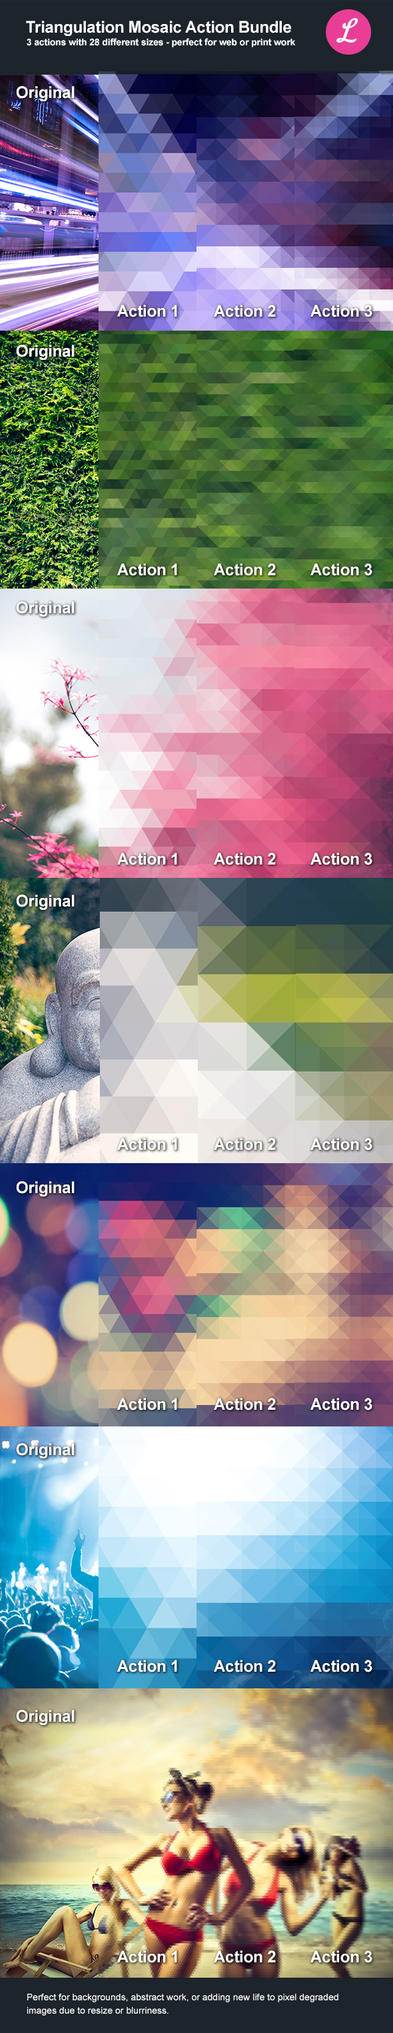 Triangulation Mosaic Bundle Actions by lickmystyle